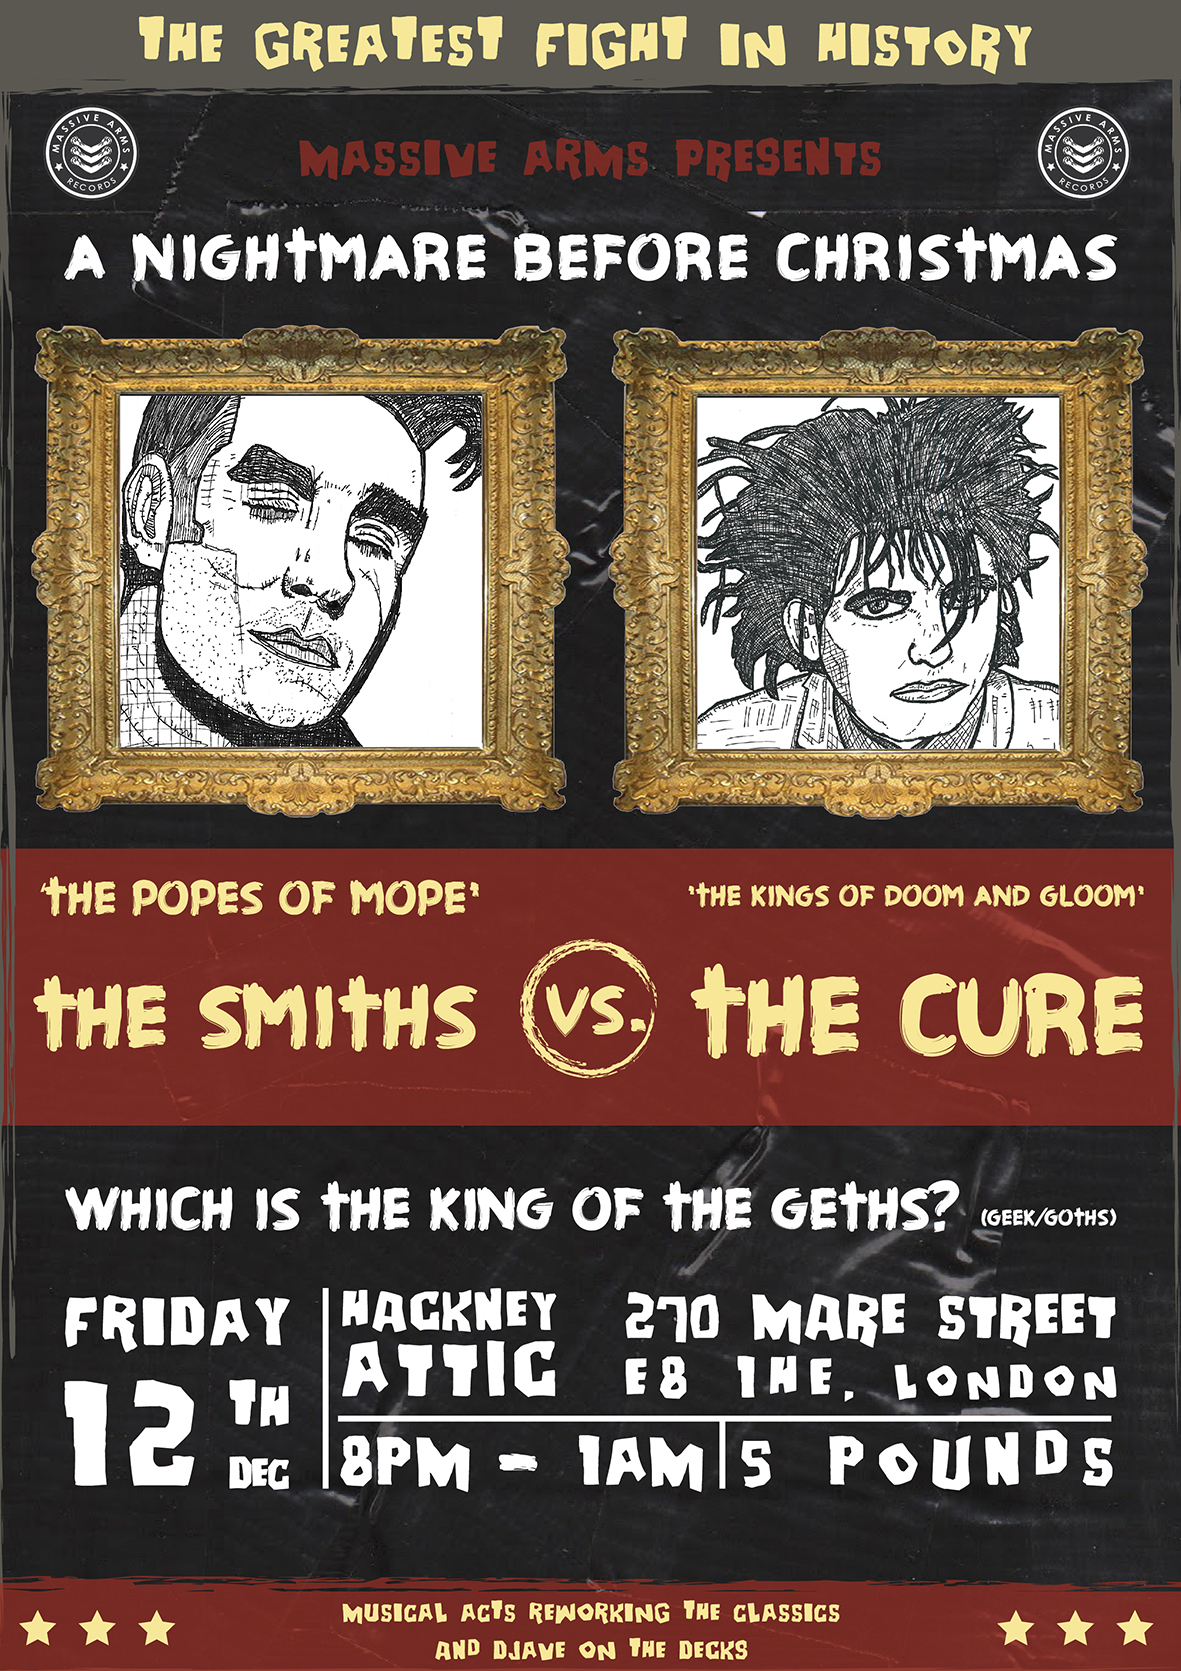 The Smiths vs The Cure – A NIGHTMARE BEFORE CHRISTMAS – a Massive Arms Promotions SPECTACULAR